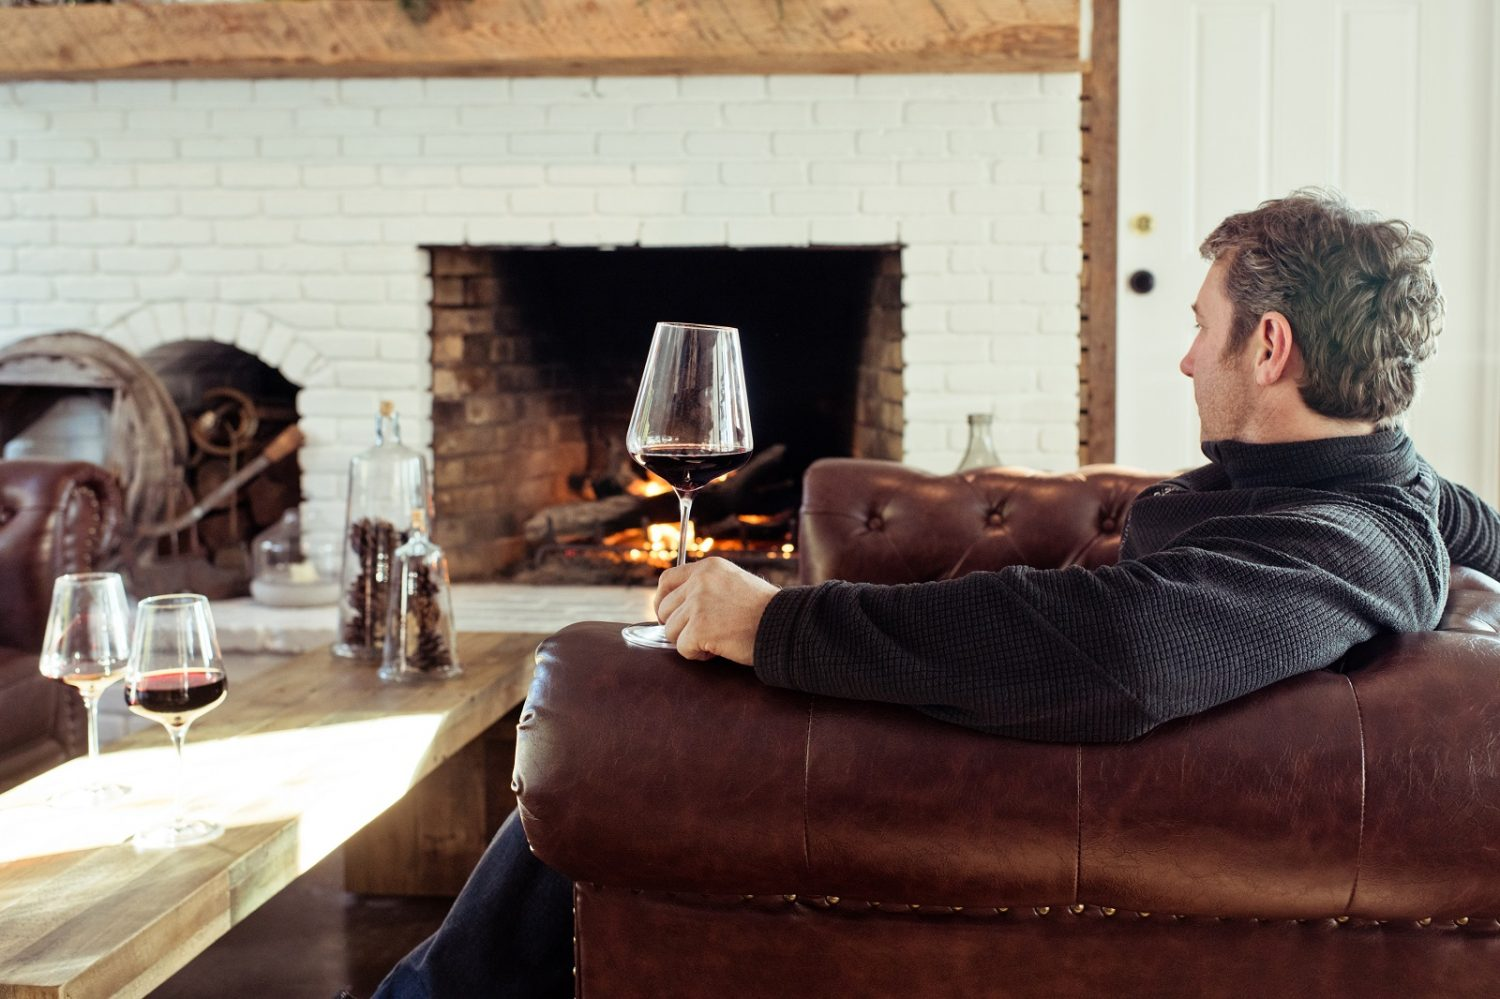 Man drinking wine in front of fire